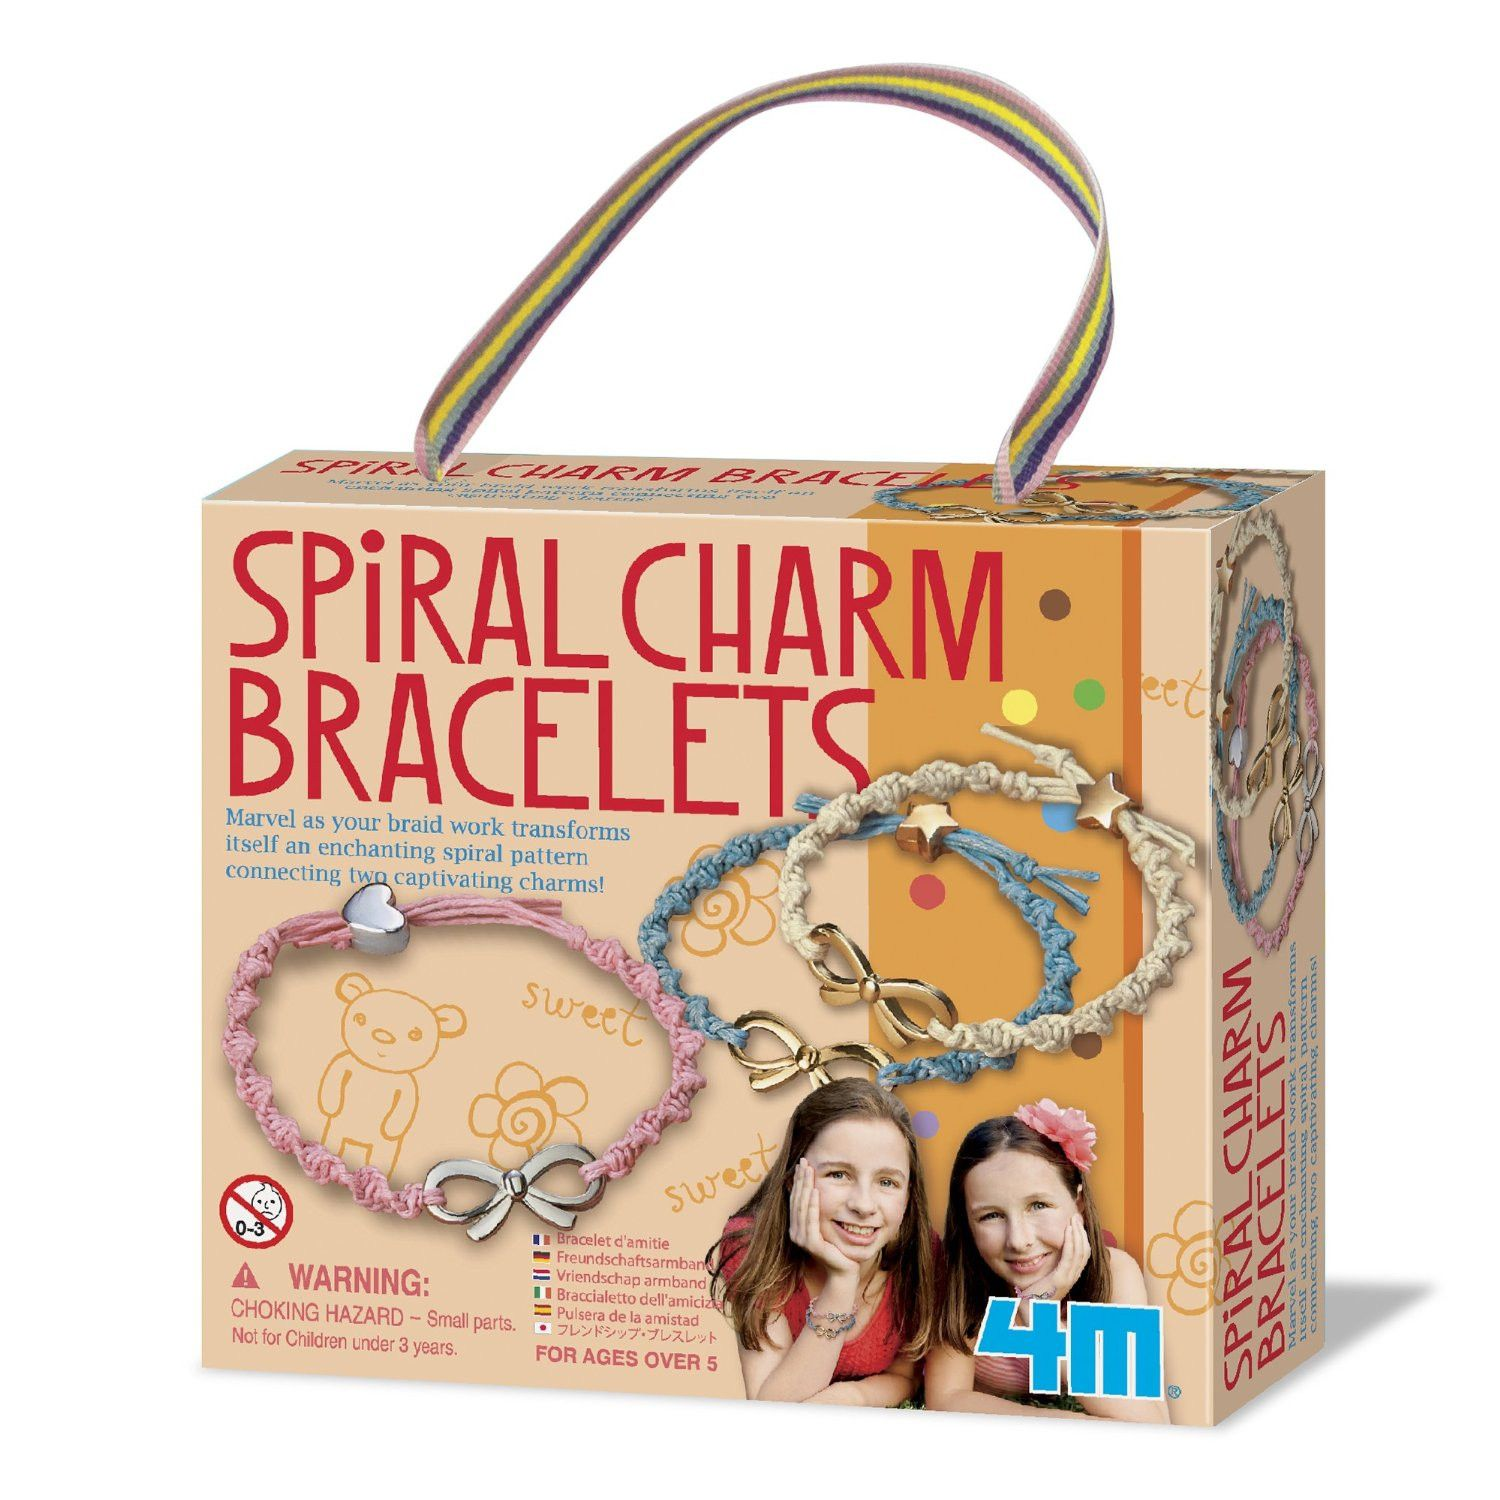 make your own spiral charm bracelets 4m craft kit survival